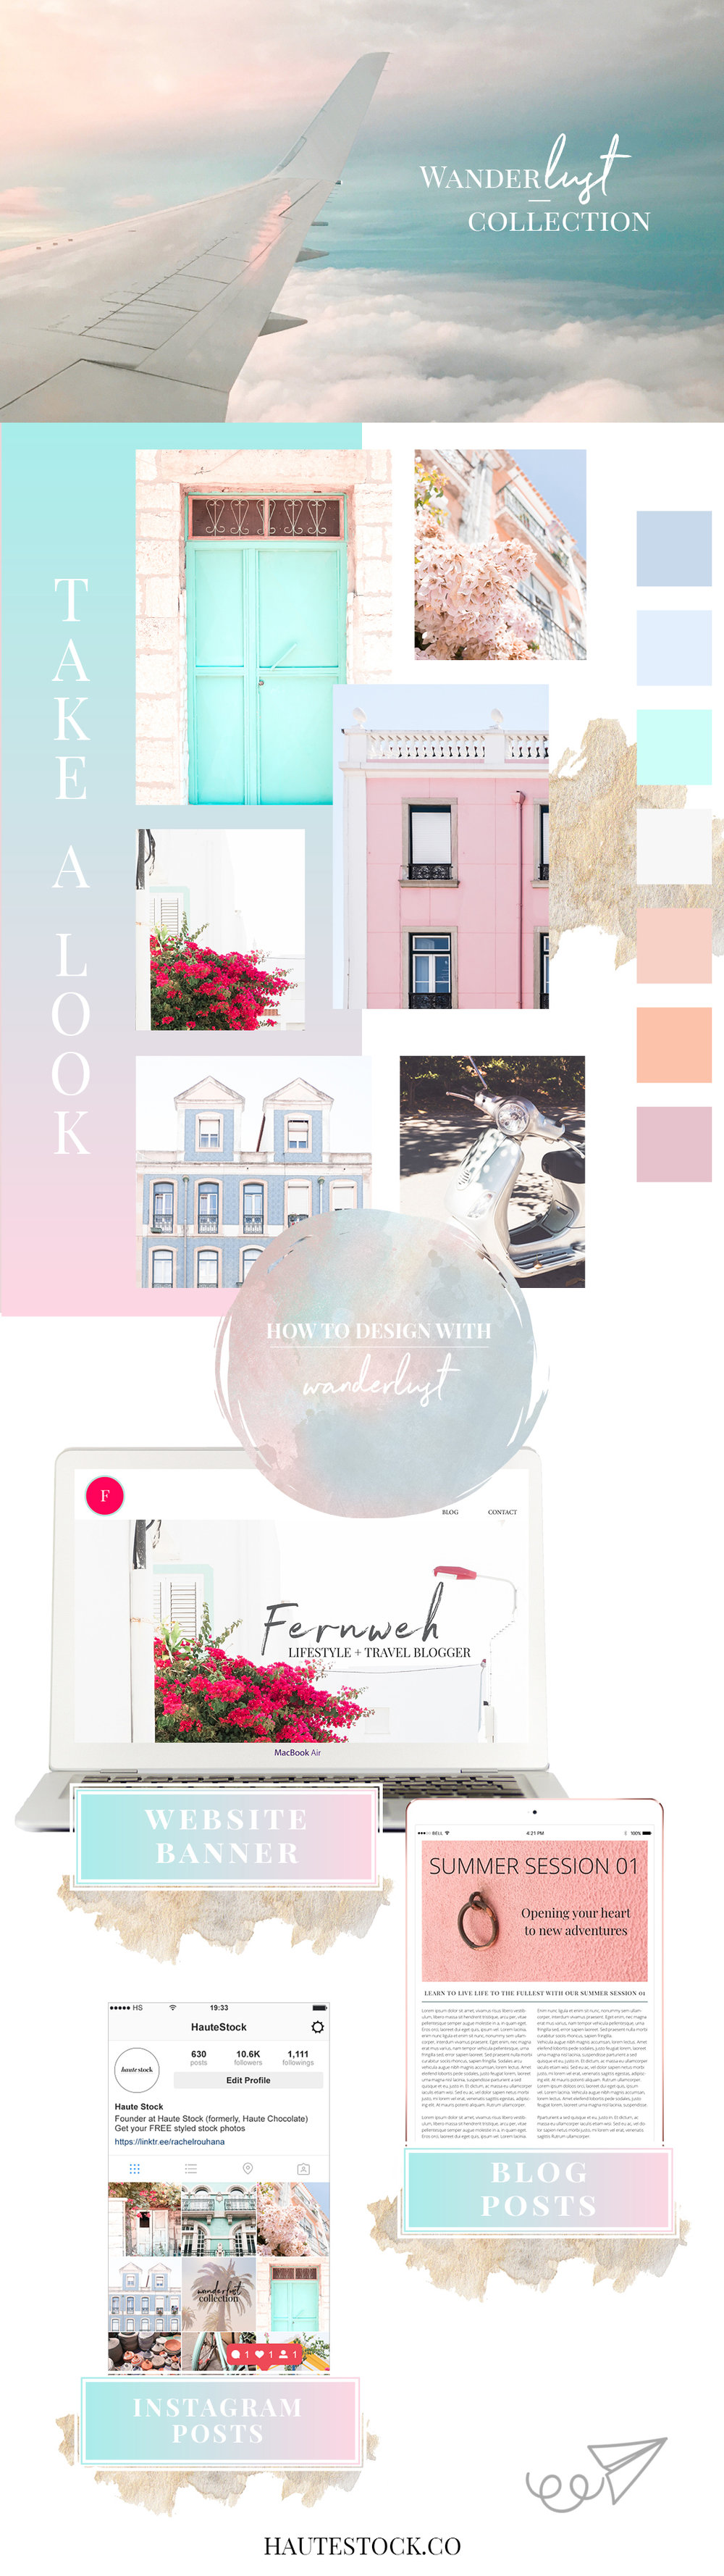 Haute-Stock-Wanderlust-Summer-Travel-Dreamy-Lifestyle-Collection-Design-Inspiration-Moodboard-Graphic.png